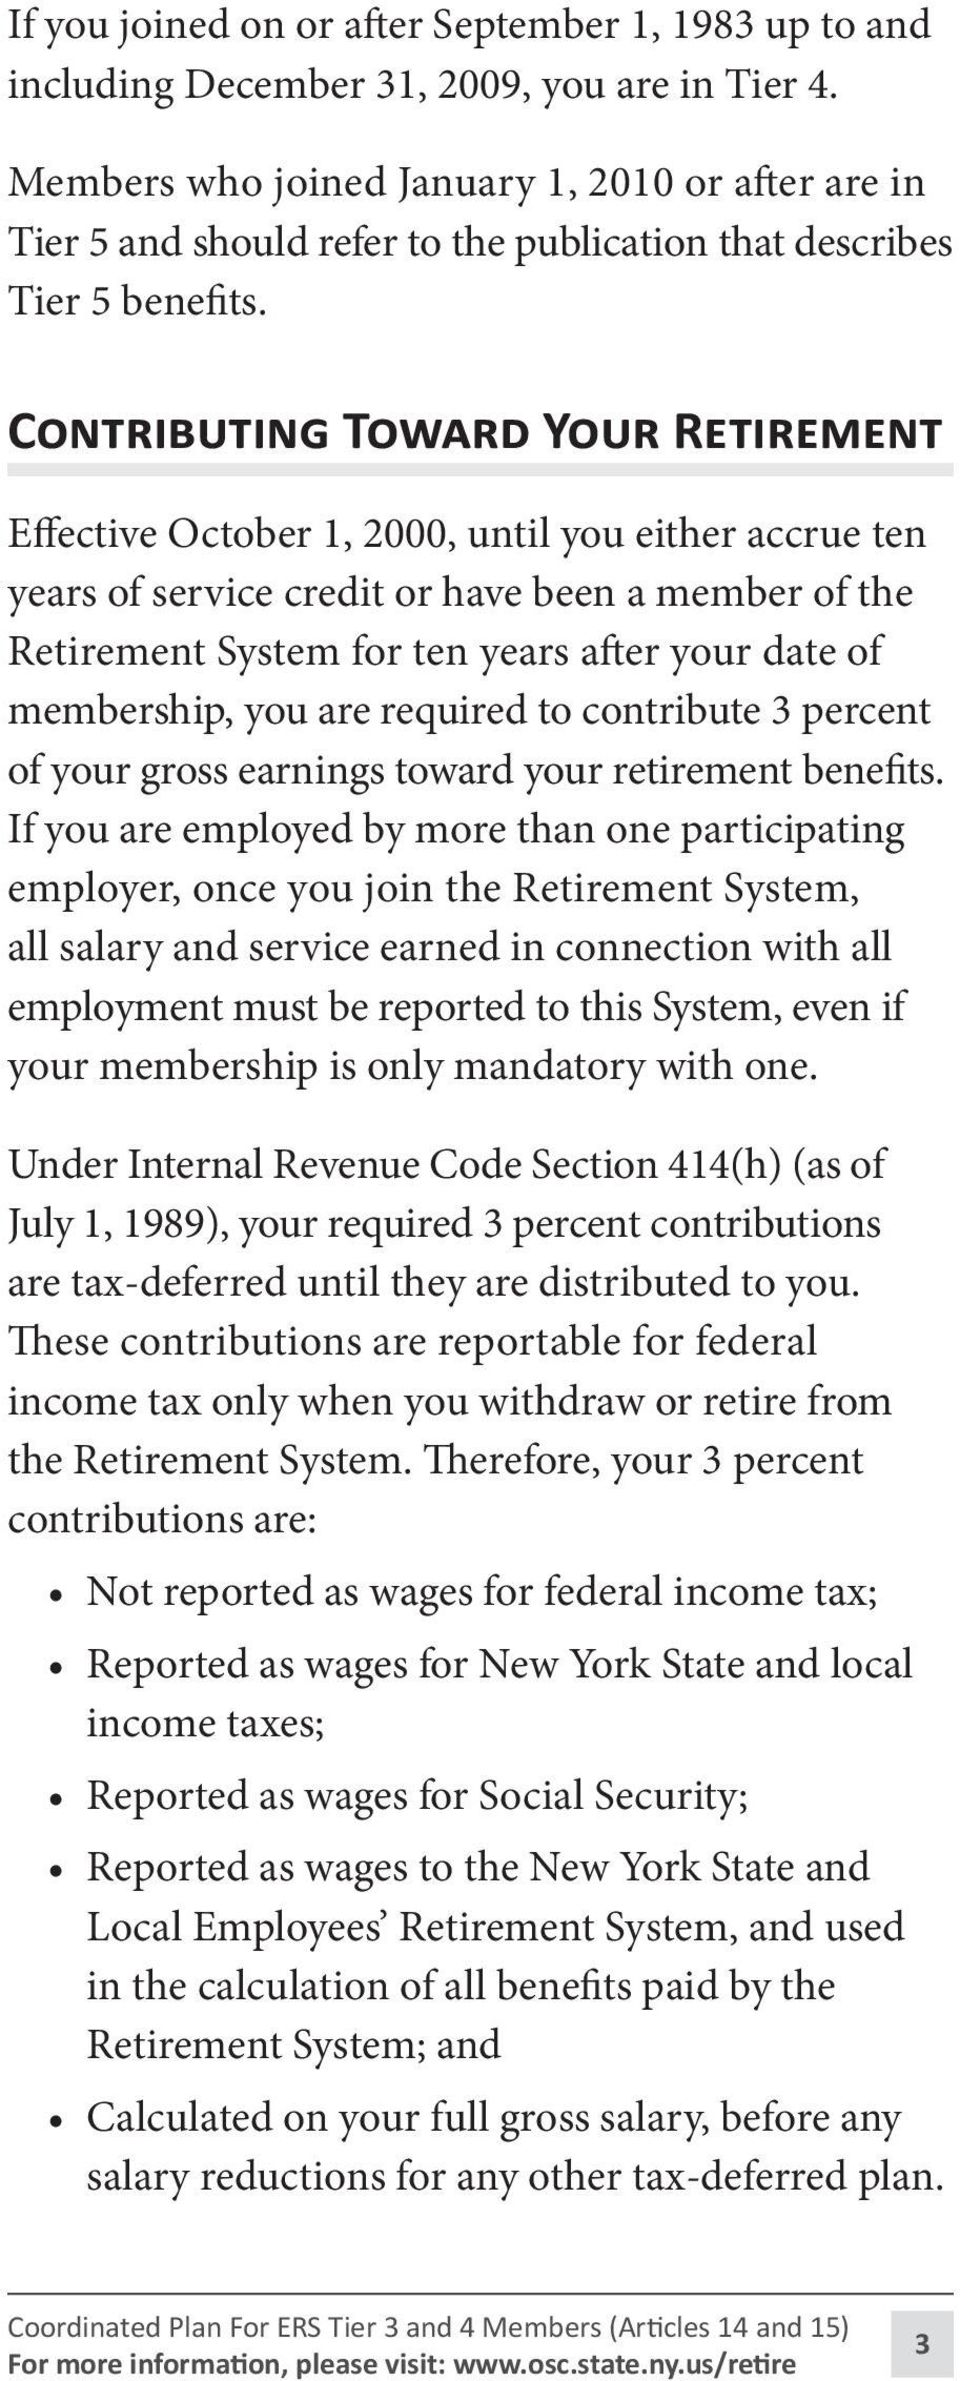 Contributing Toward Your Retirement Effective October 1, 2000, until you either accrue ten years of service credit or have been a member of the Retirement System for ten years after your date of